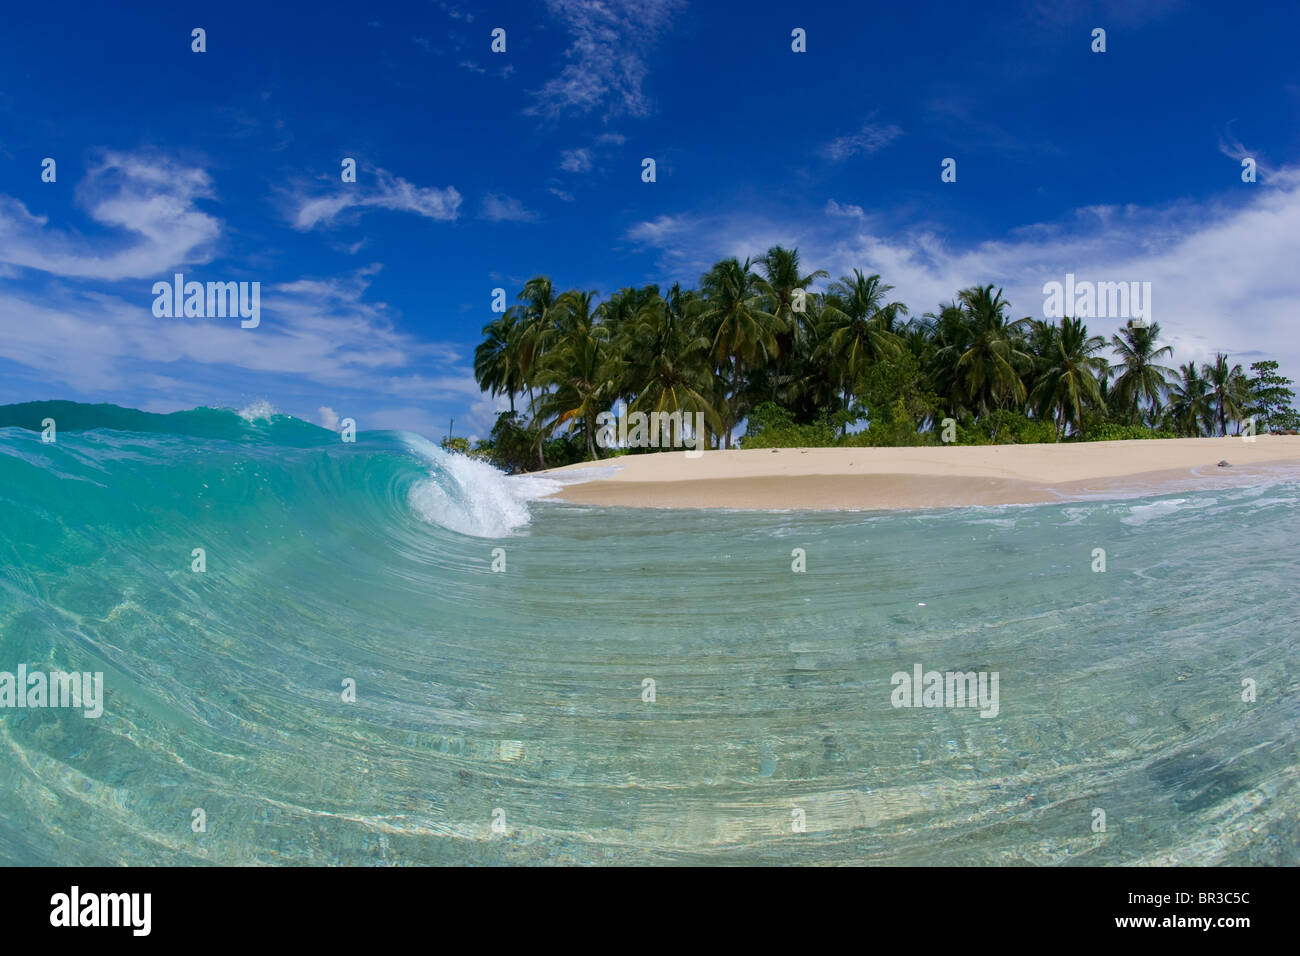 rolling wave with island behind, Mentawai Islands - Stock Image